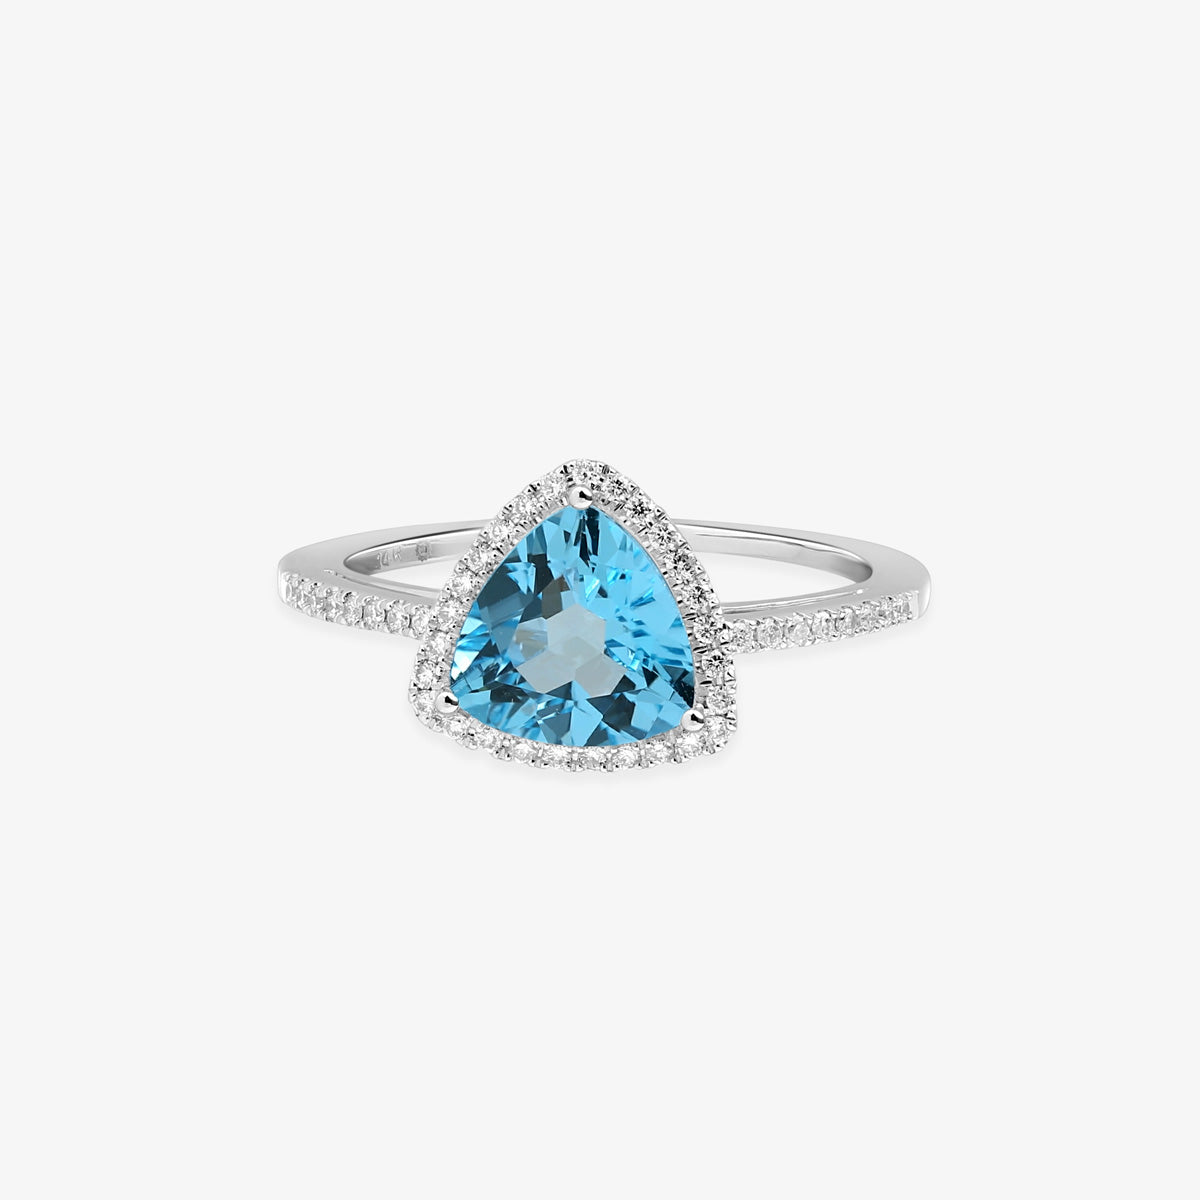 Diamond Statement Ring With Blue Topaz - estellacollection